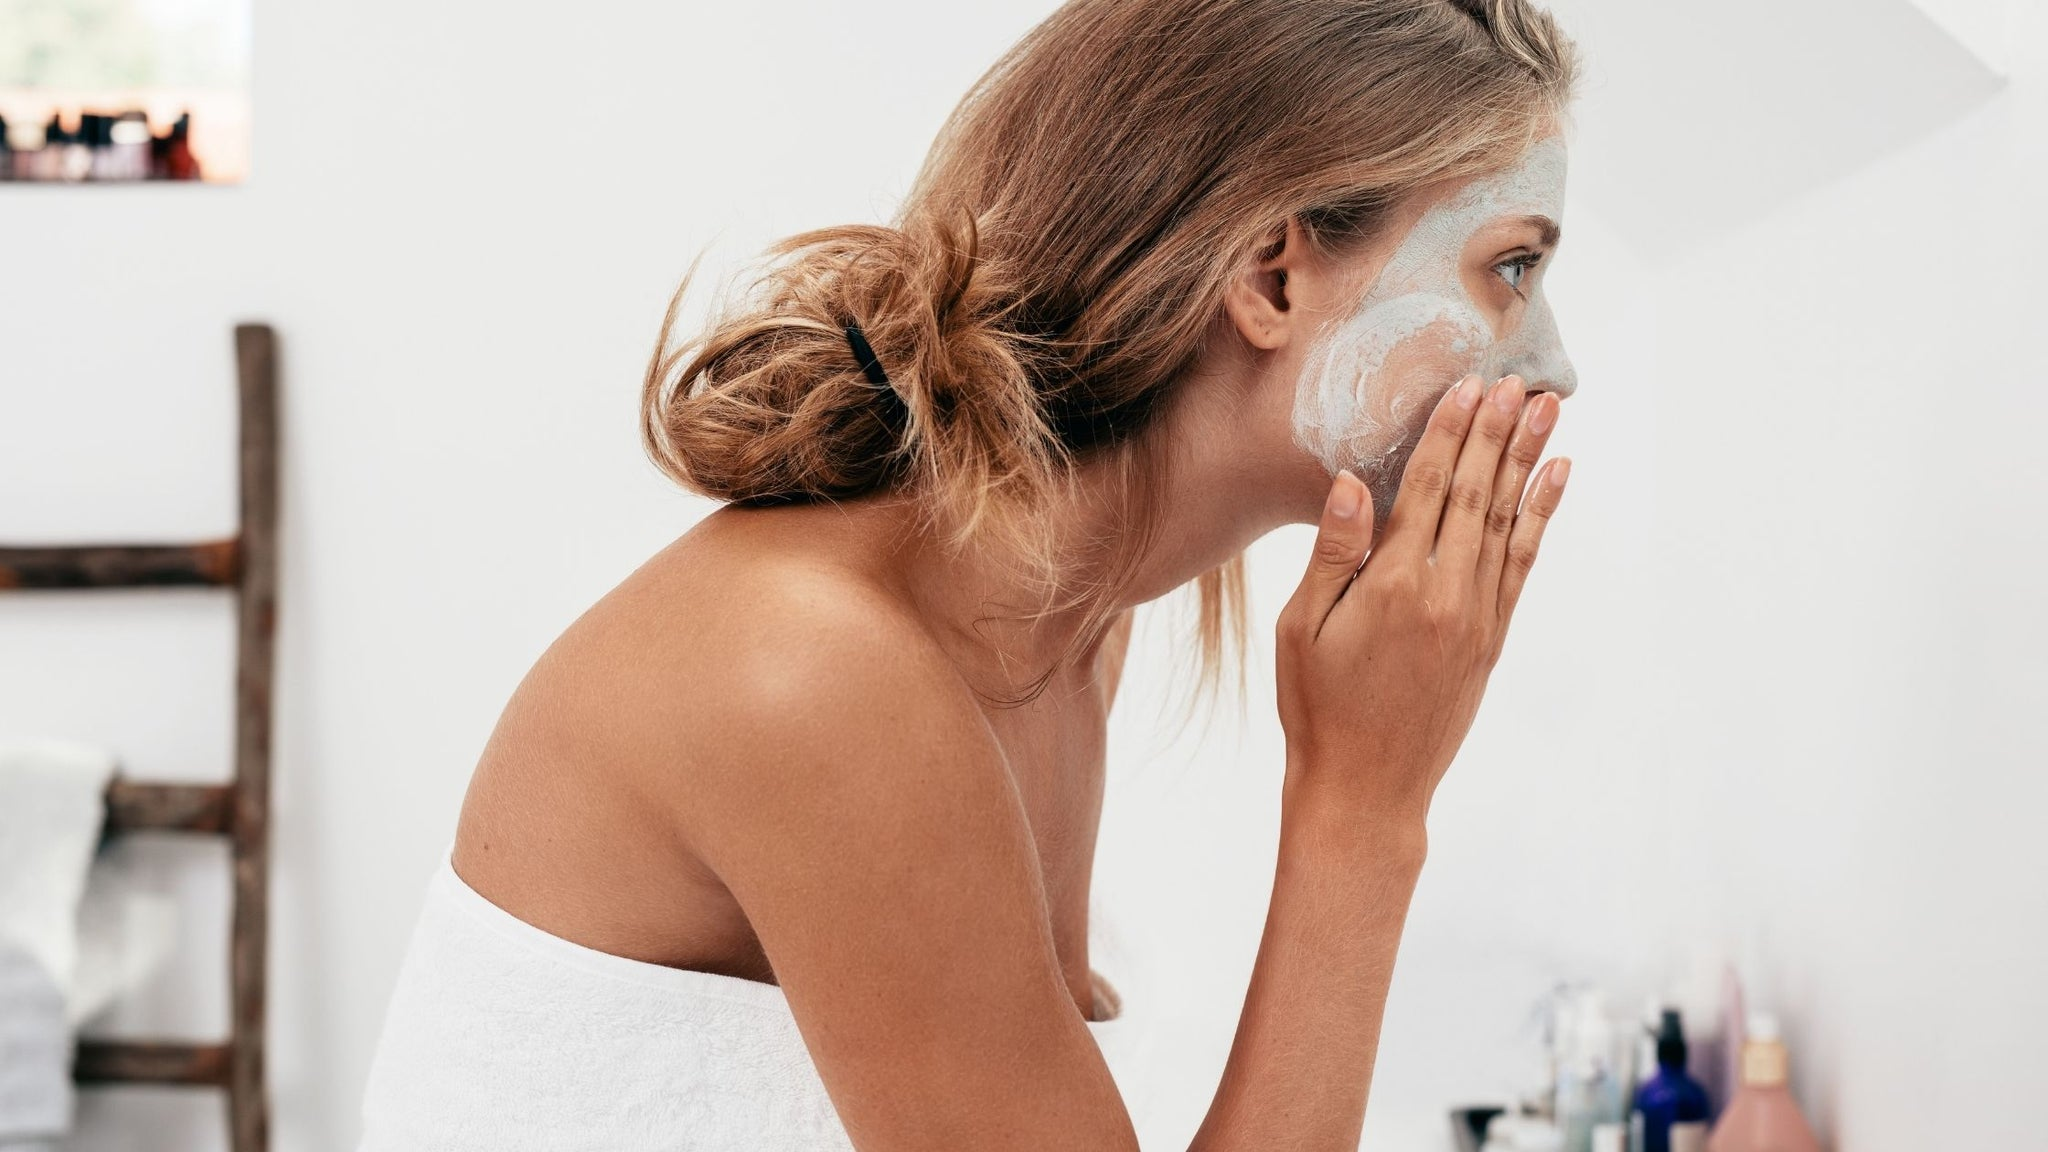 Our Skincare Specialist's Top Advice For Dealing With Stressed Skin